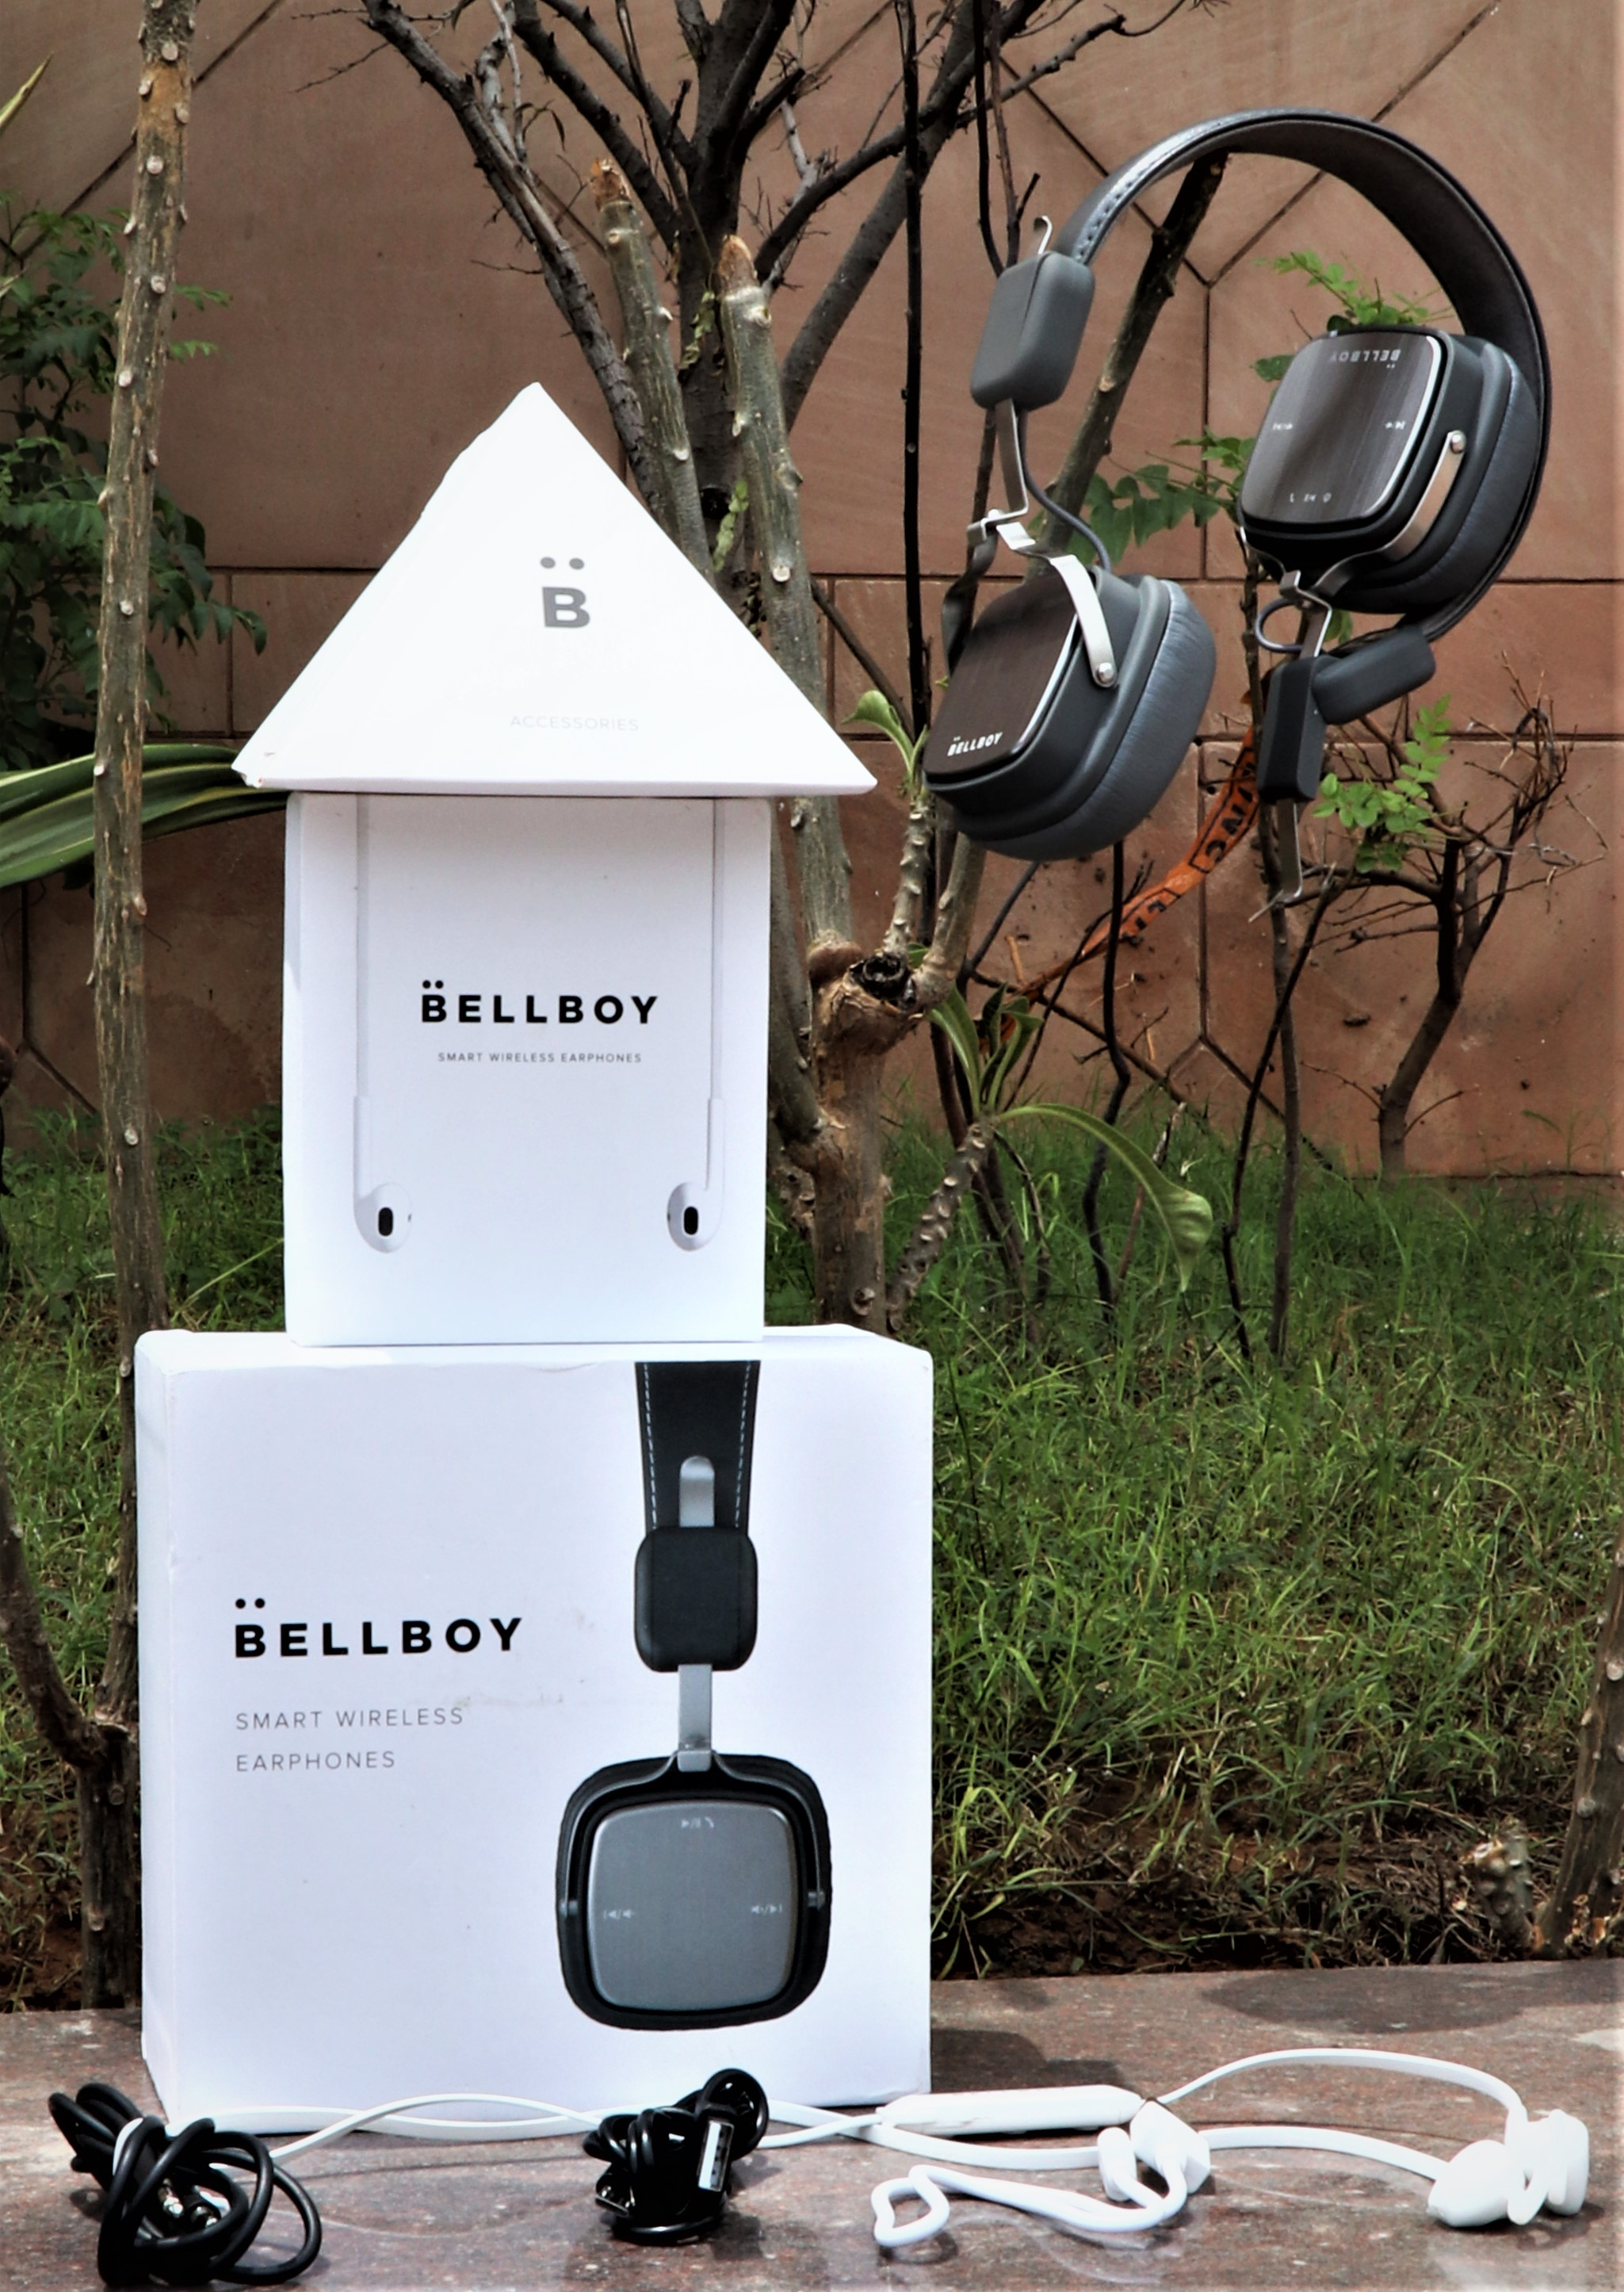 Bellboy Smart Wireless Headphones and Earphones